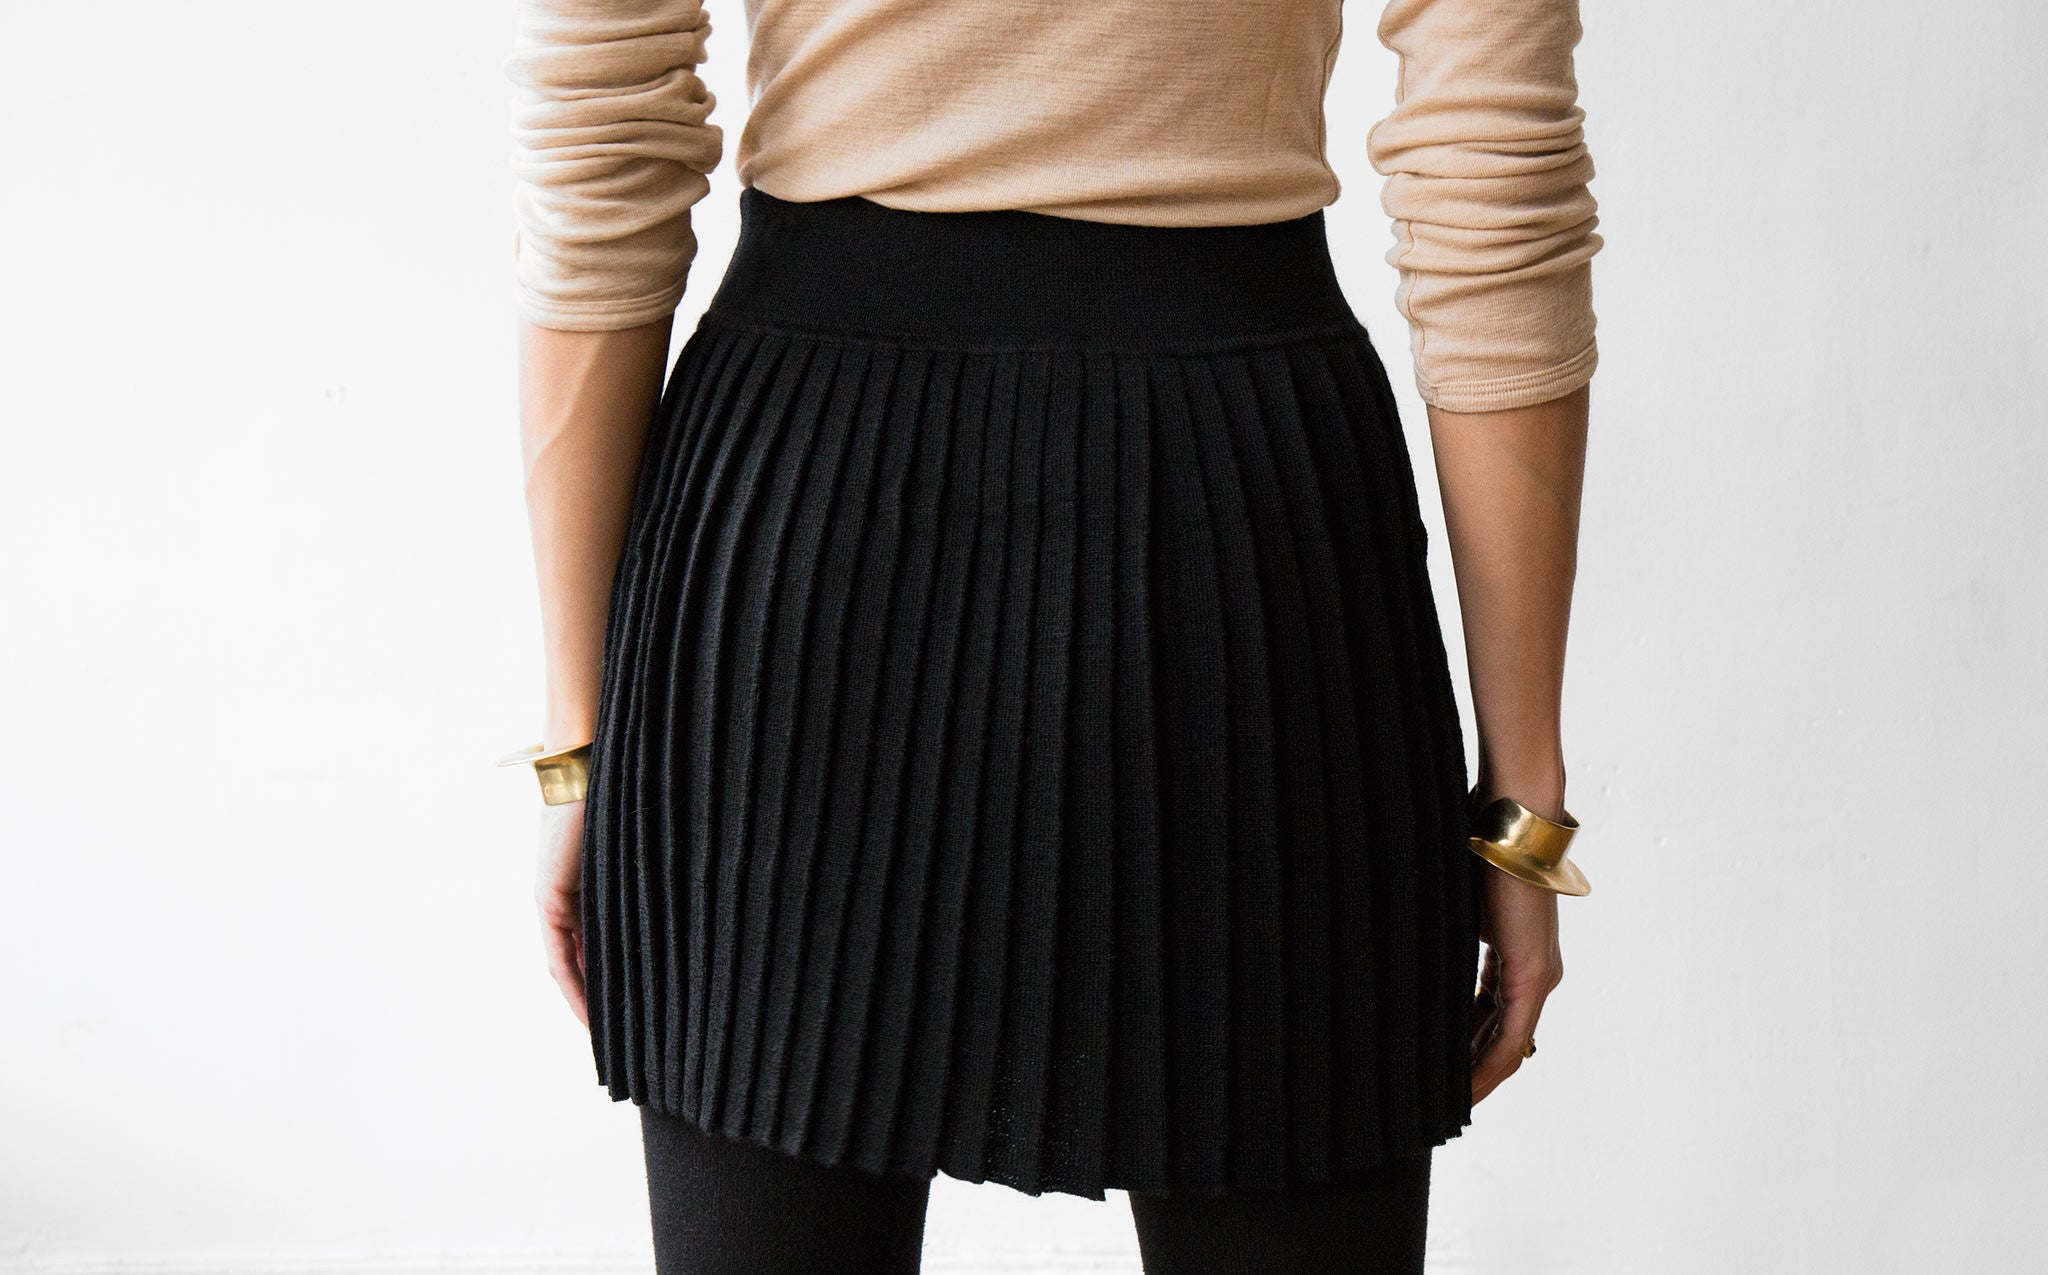 Hesperios Cleo Skirt kindred black